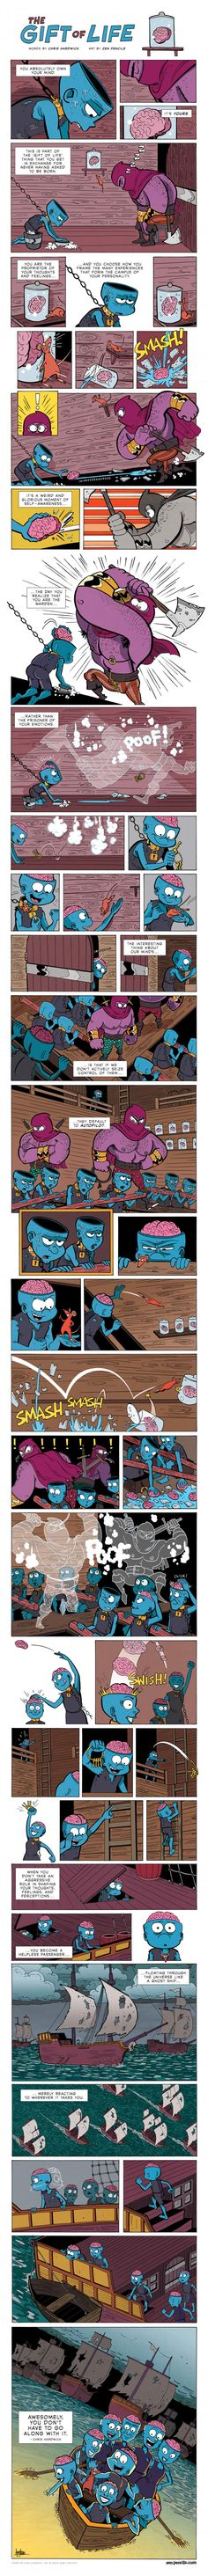 Don't be a sheep; think for yourself. The Gift of Life by Chris Hardwick (art by Zen Pencils)   9GAG